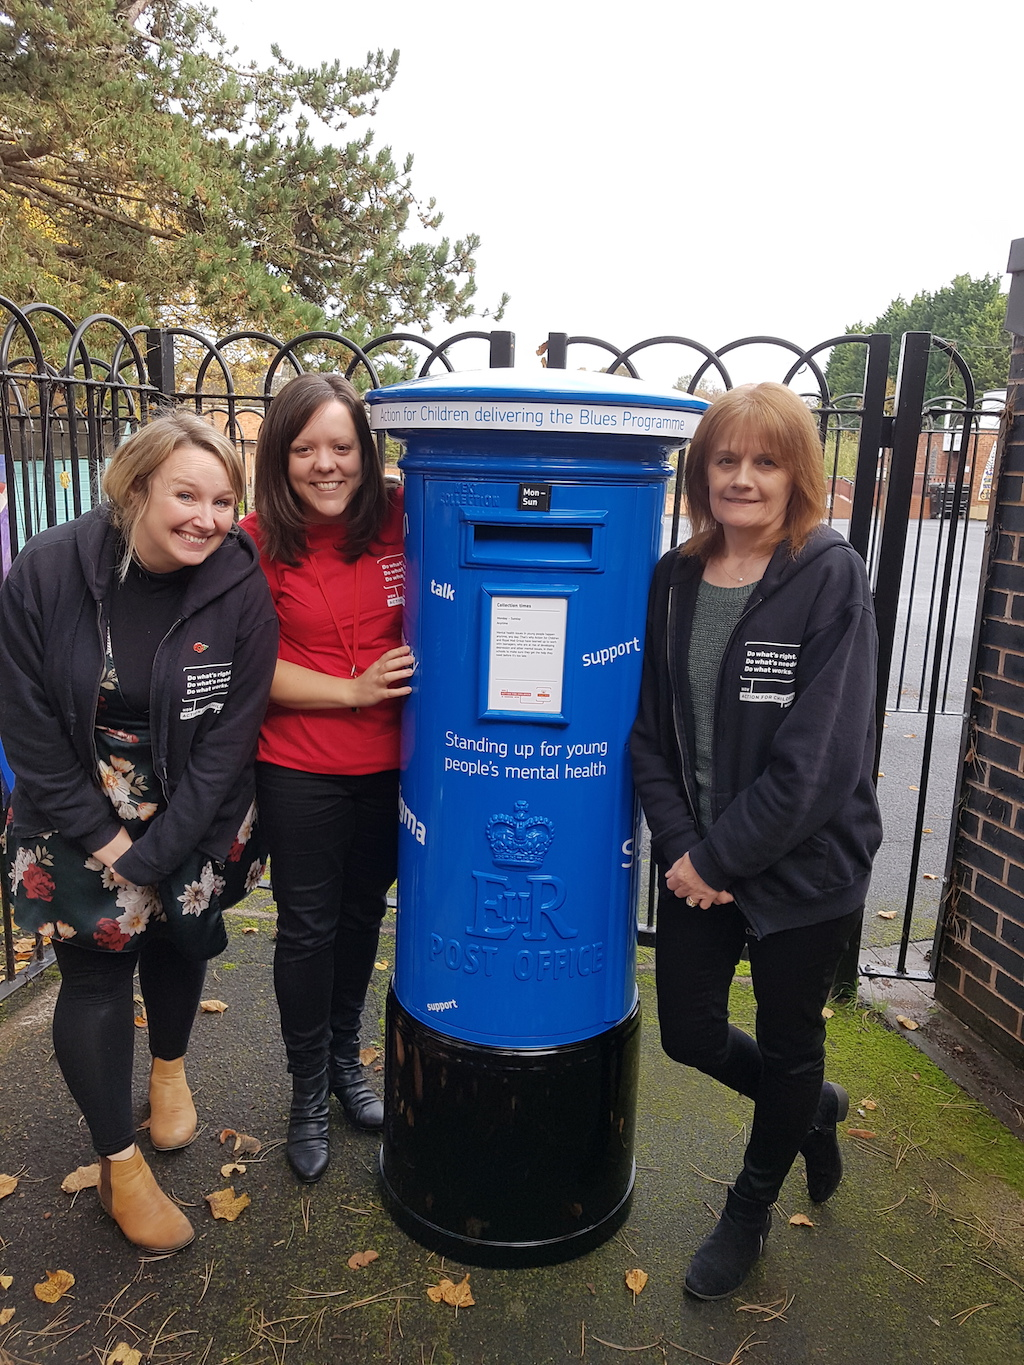 """Action for children's Worcester team alongside the Royal Mails Blues busting Letter Box"" for the Blues Programme article"